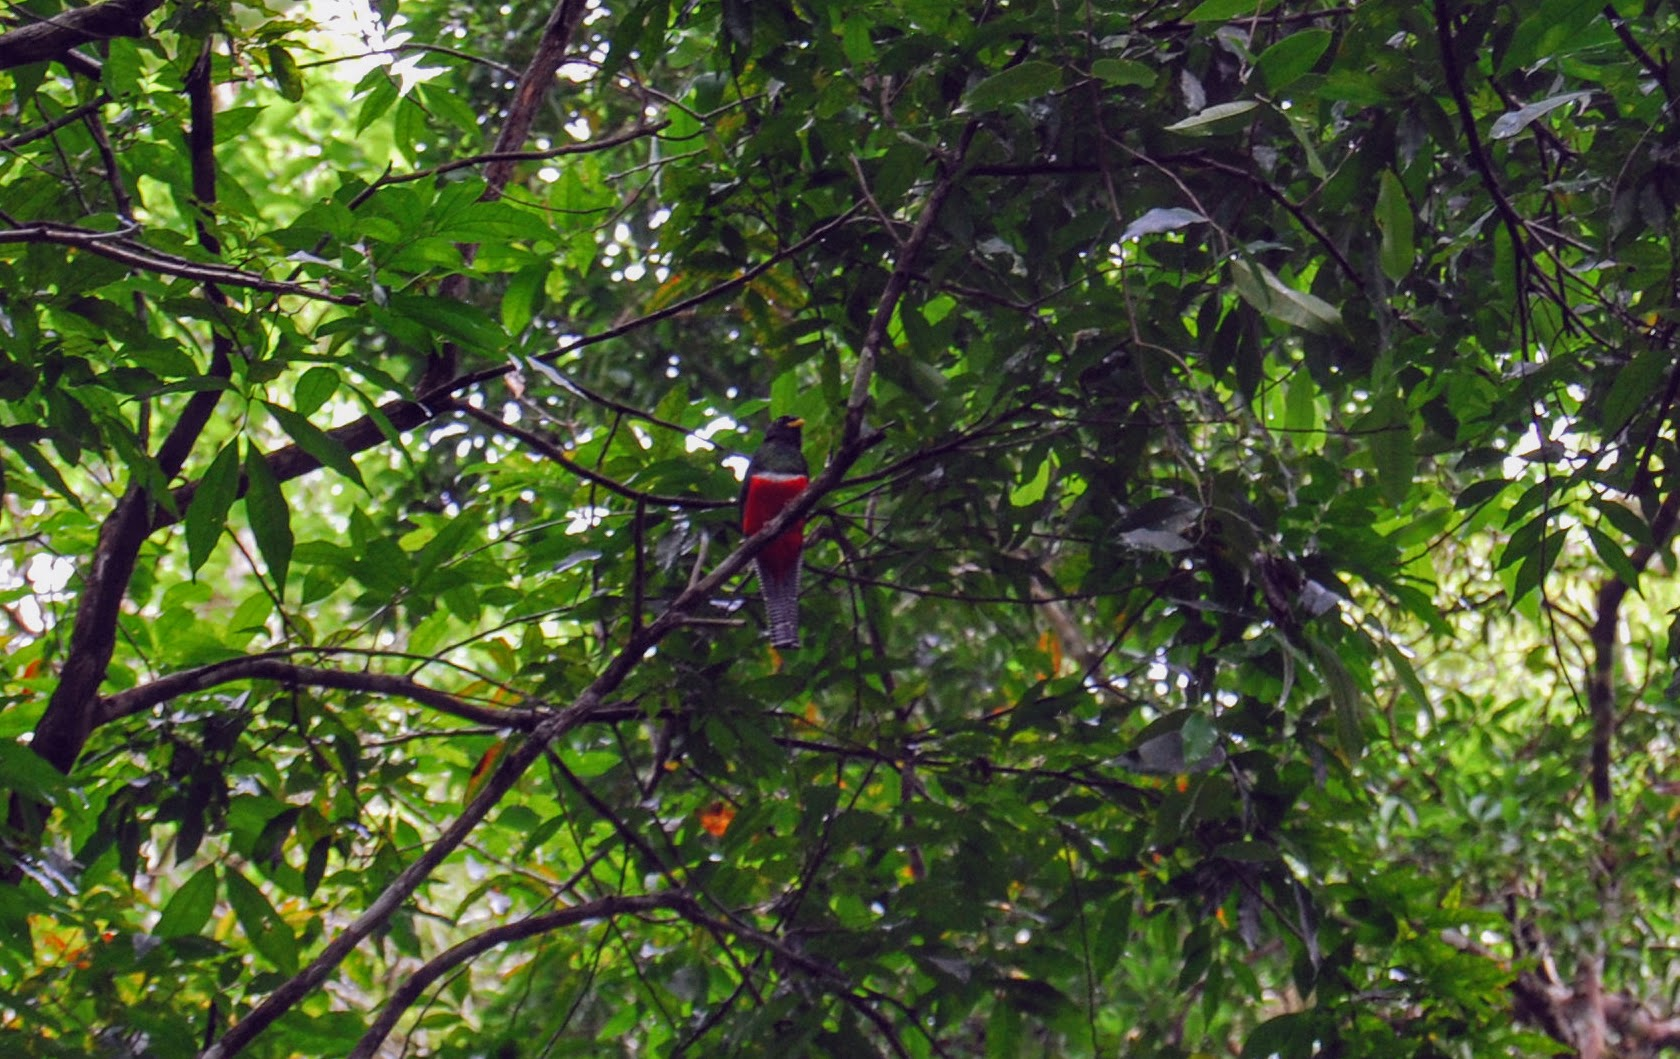 Our guide spotted this trogon, a relative of the quetzal, the national bird of Guatemala and which was revered by the Mayans. We never would have seen this guy on our own. Then he taught the kids to whistle like it. They spent the rest of the trip perfecting their bird calls.